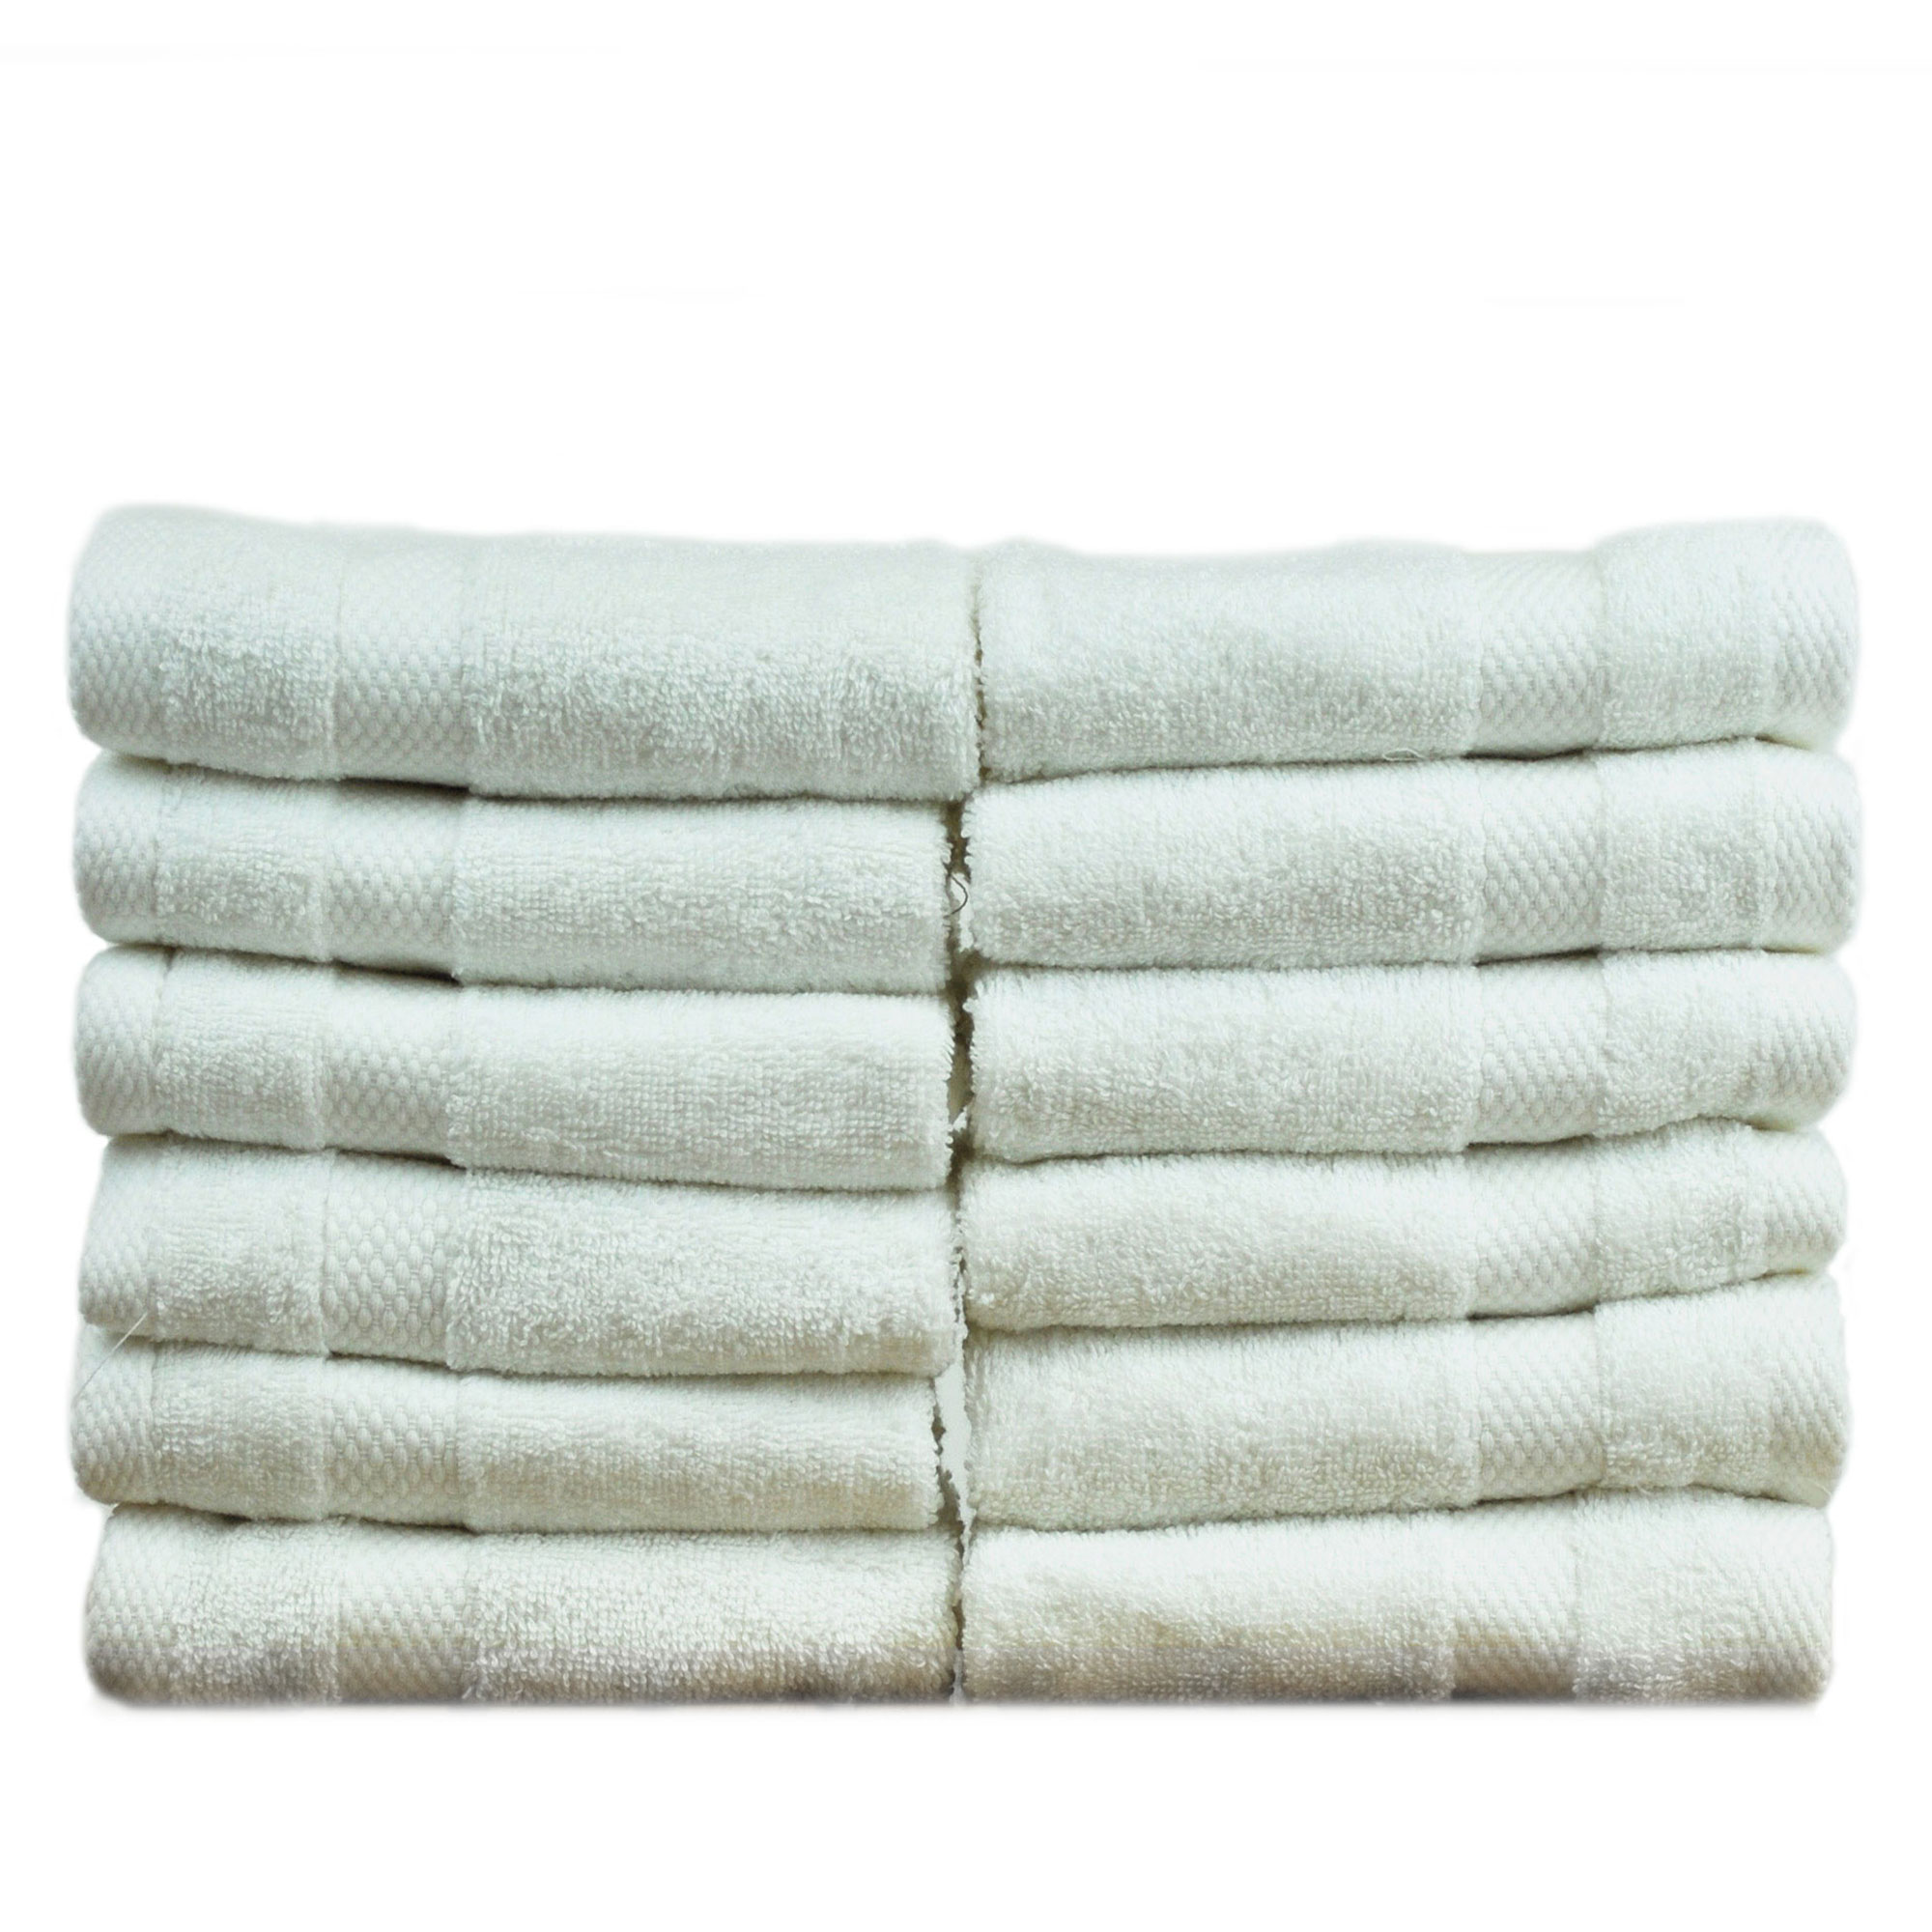 Bare Cotton Luxury Hotel & Spa Towel 100% Genuine Turkish Cotton Washcloths - White - Honeycomb -  Set of 6